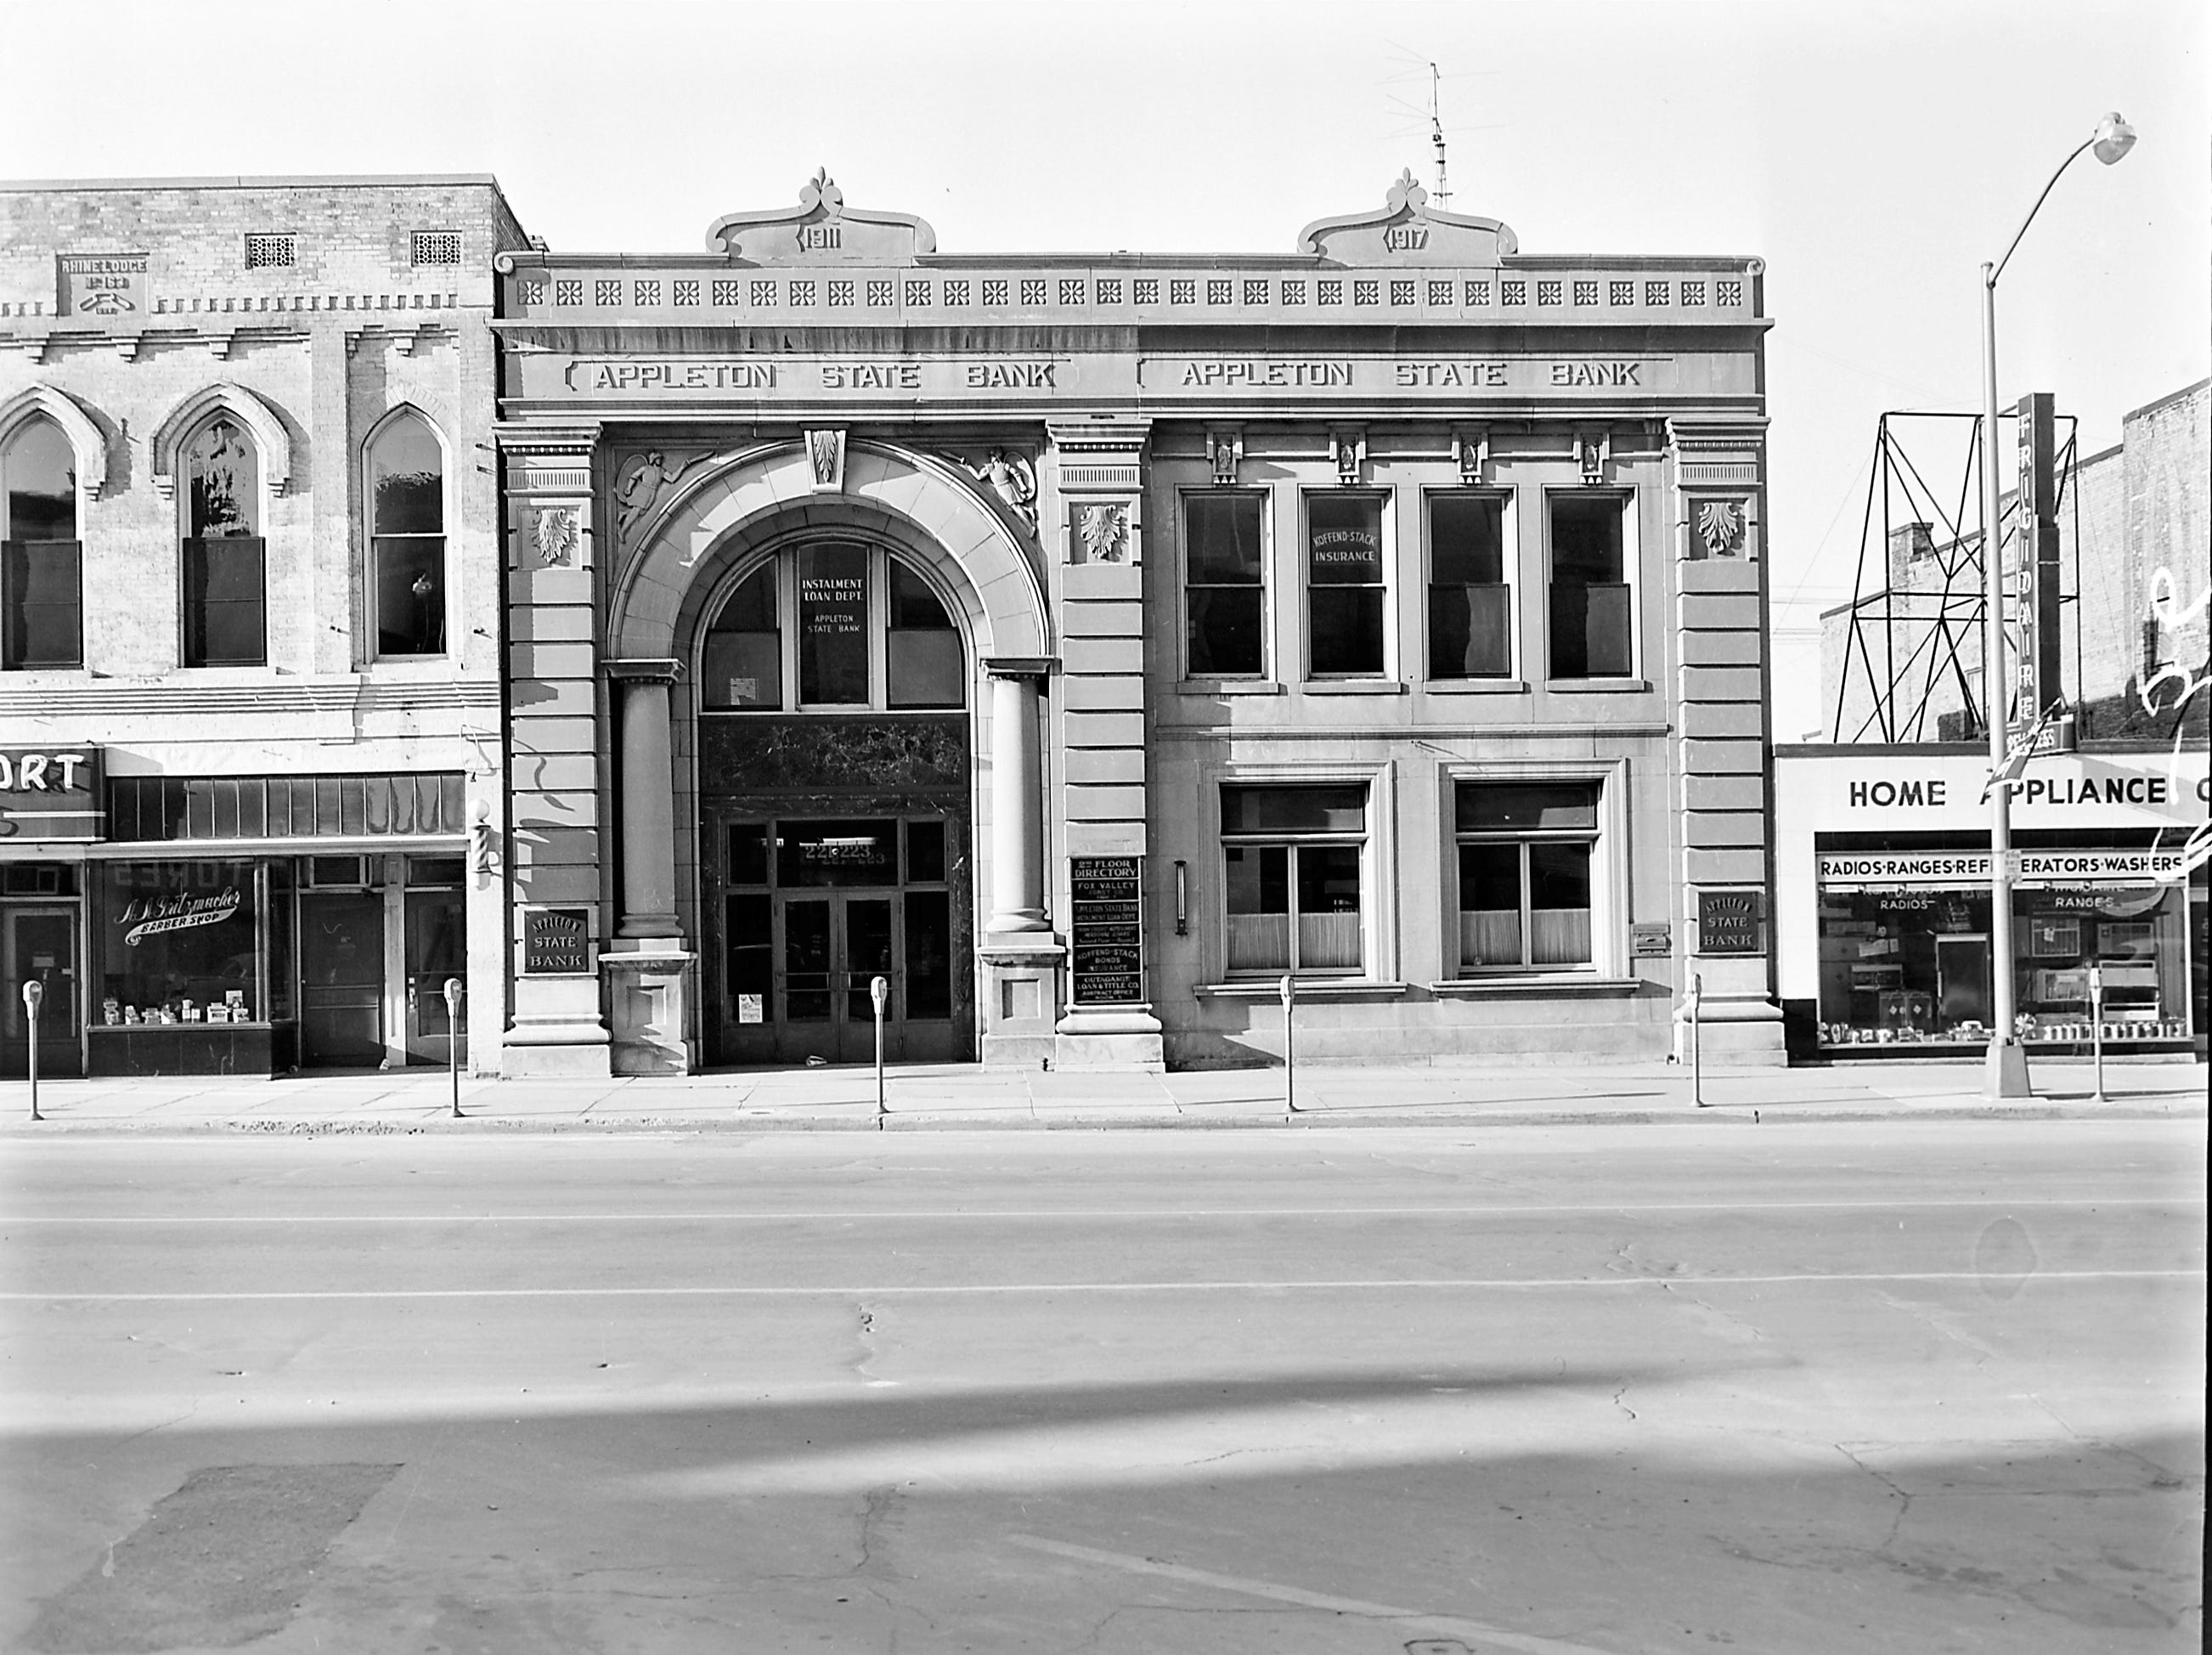 1957 Downtown Appleton. 200 West block on the south side of College Avenue: Foot-so-Port. Barber Shop. Appleton State Bank. Home Appliance. Post-Crescent photo by staff.